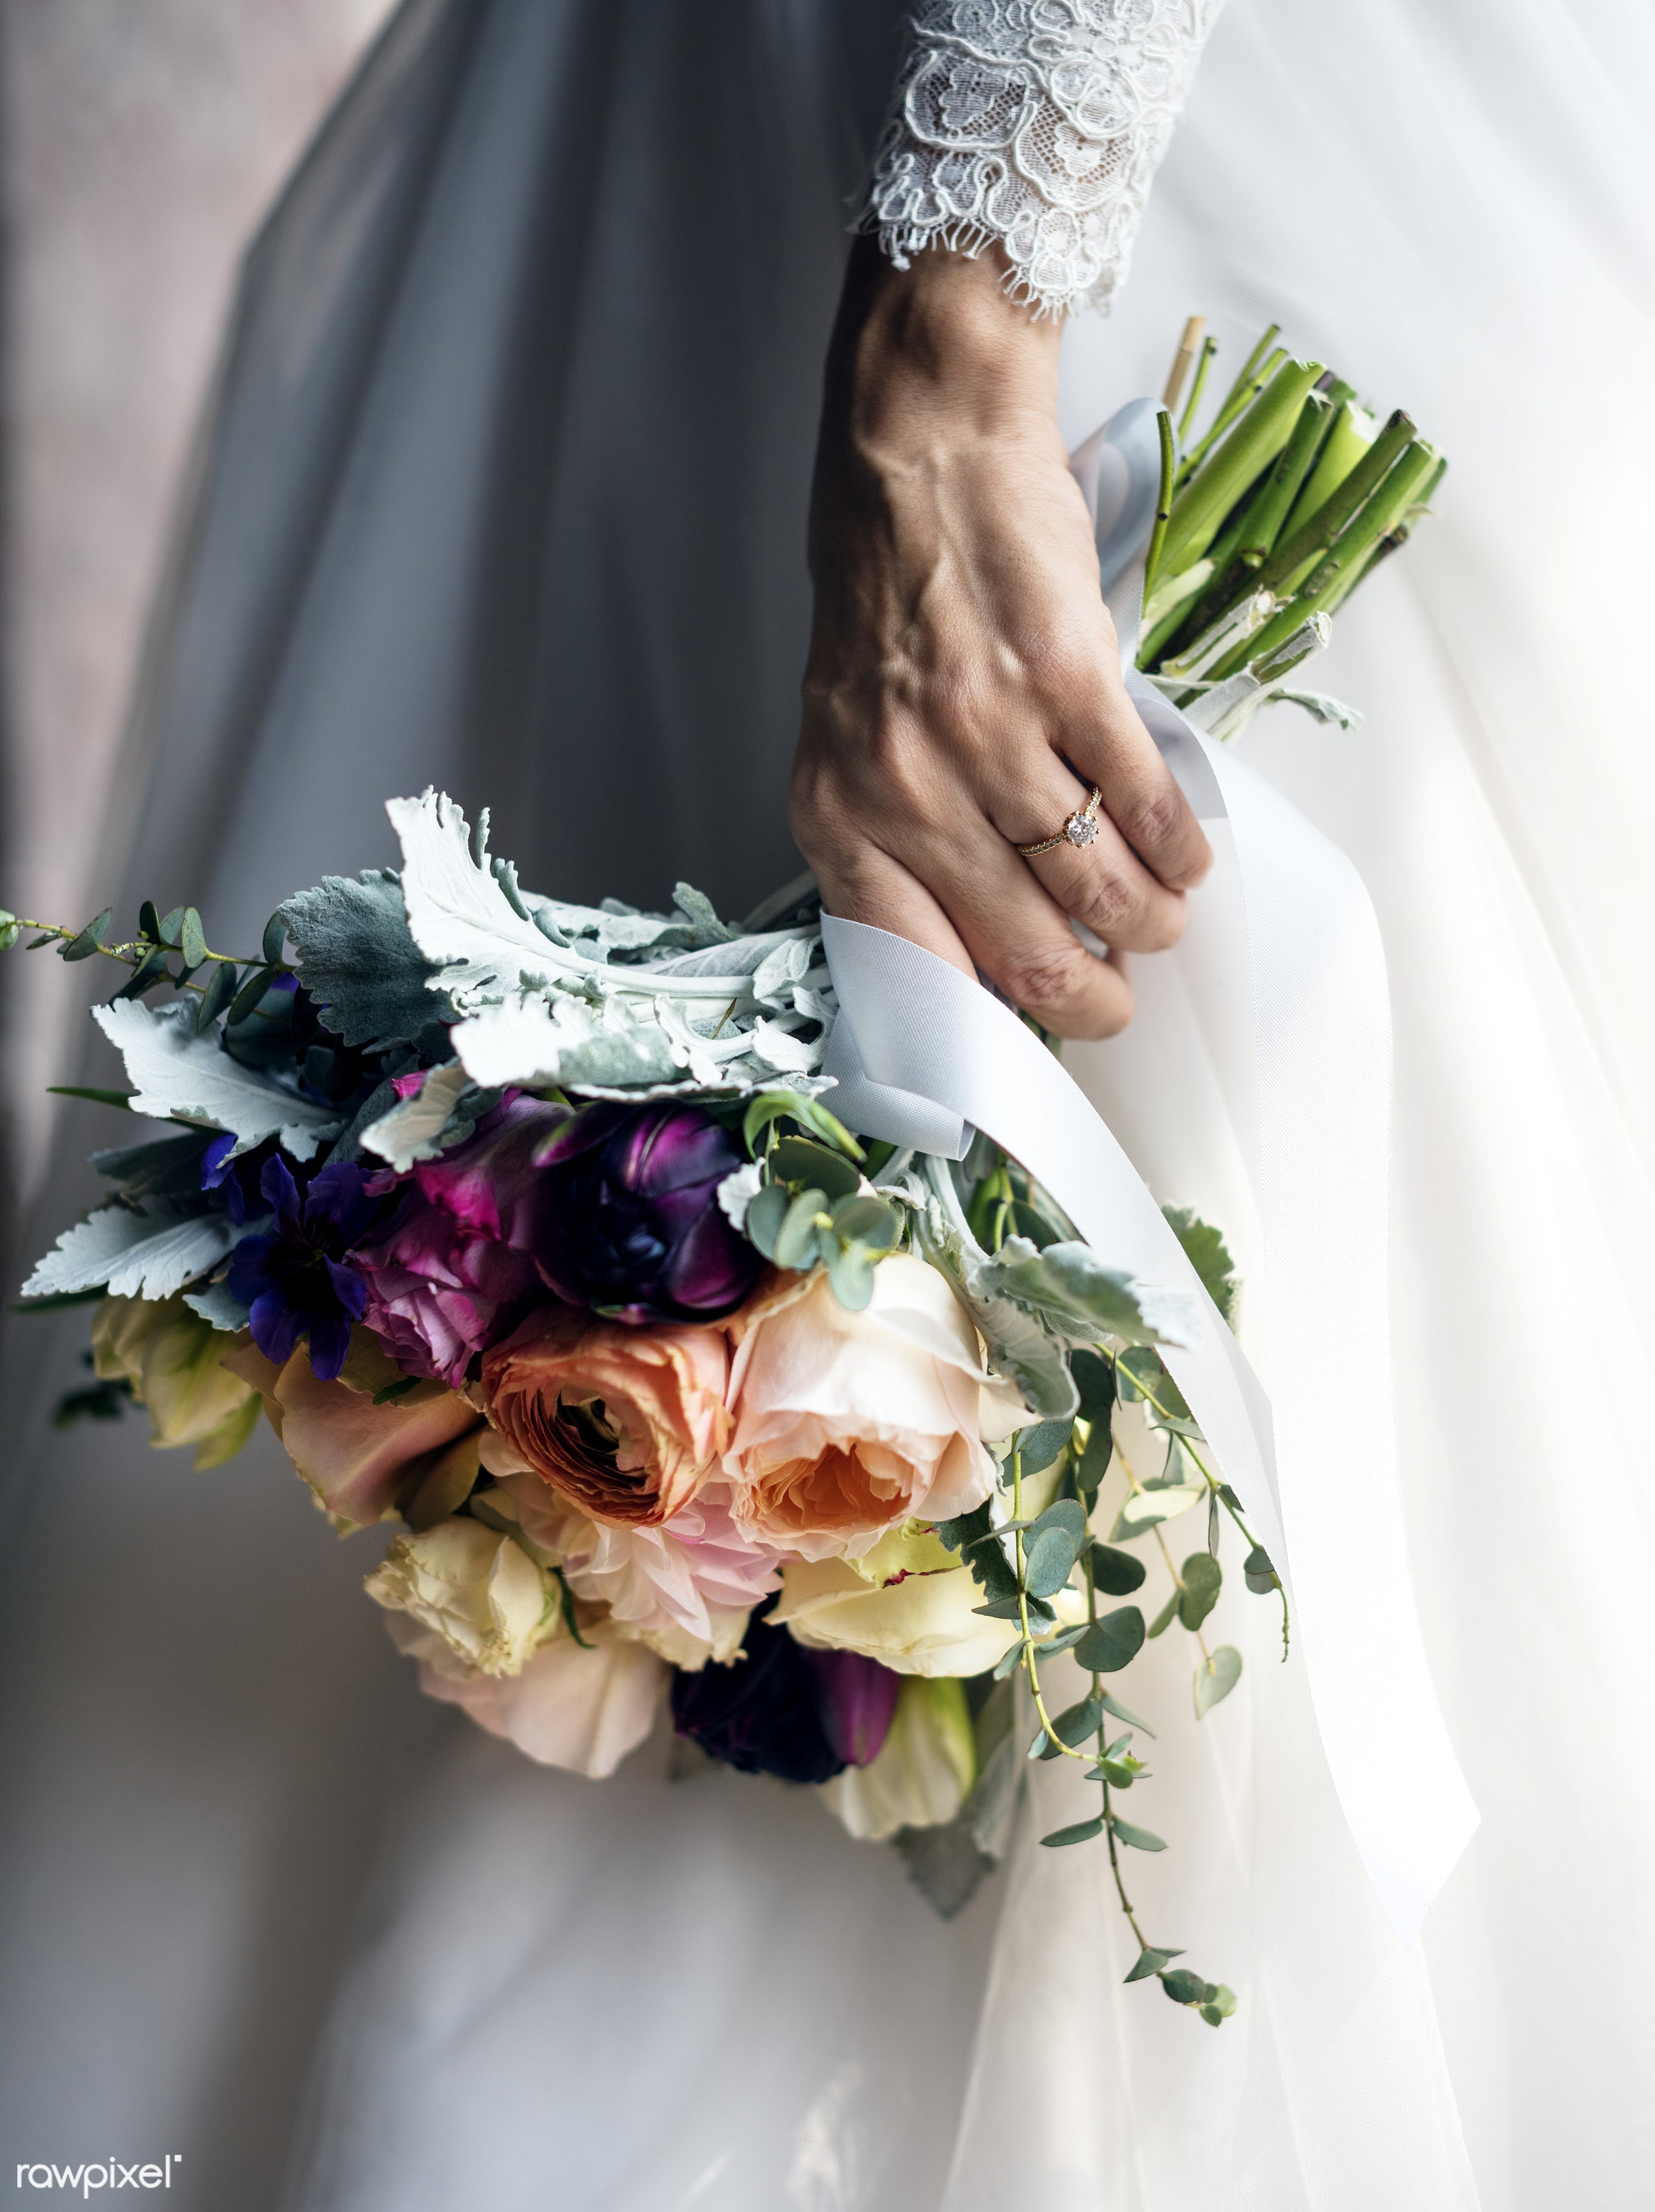 bouquet, holding, diverse, white dress, tulips, caucasian, real, nature, fresh, hands, woman, event, mixed, bride, flowers,...